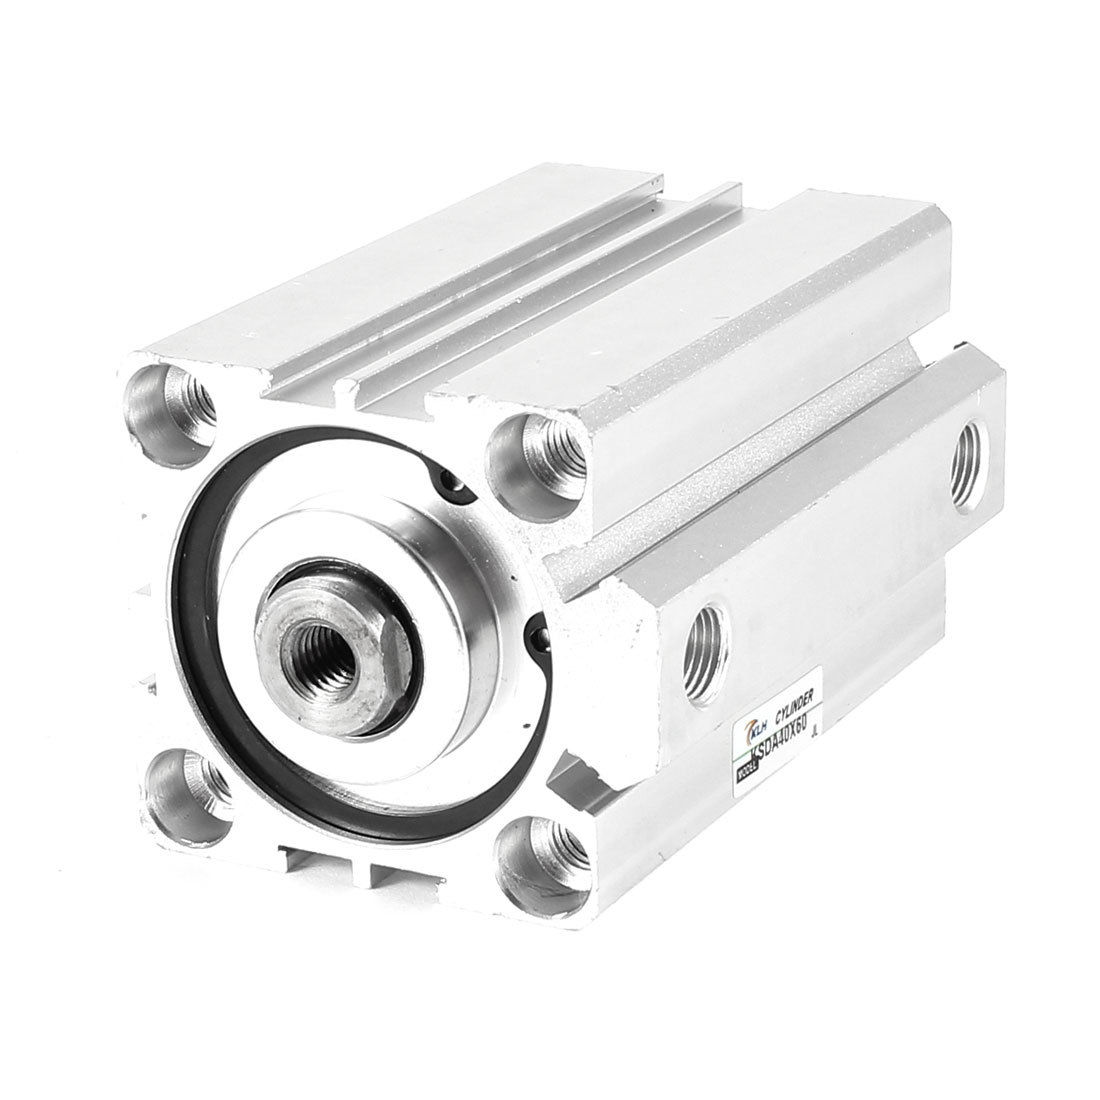 1 Pcs 63mm Bore 50mm Stroke Stainless steel Pneumatic Air Cylinder SDA63-50<br>